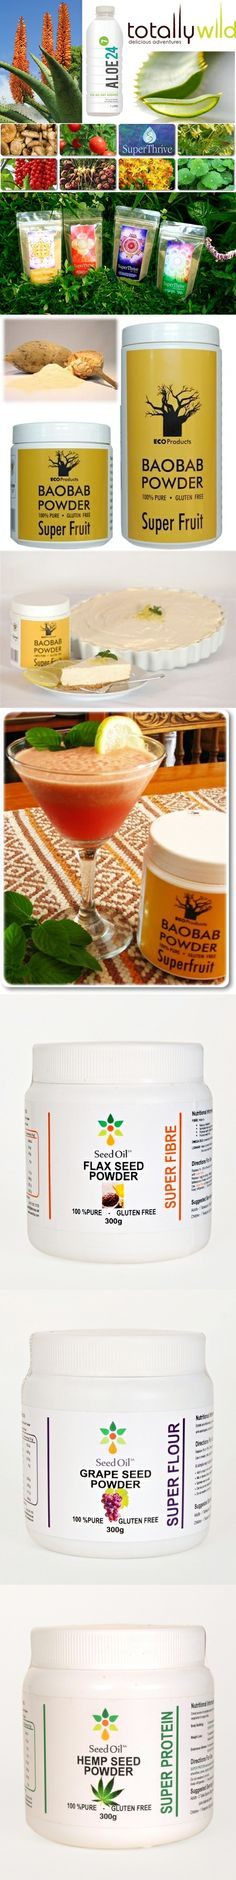 Natural Superfoods from NEOTRADING: Totally Wild Aloe 24/7 drink, Superthrive Superfoods pre-mixed, EcoProducts Baobab powder, Seedoil's Hempseed, Flaxseed and Grapeseed powders